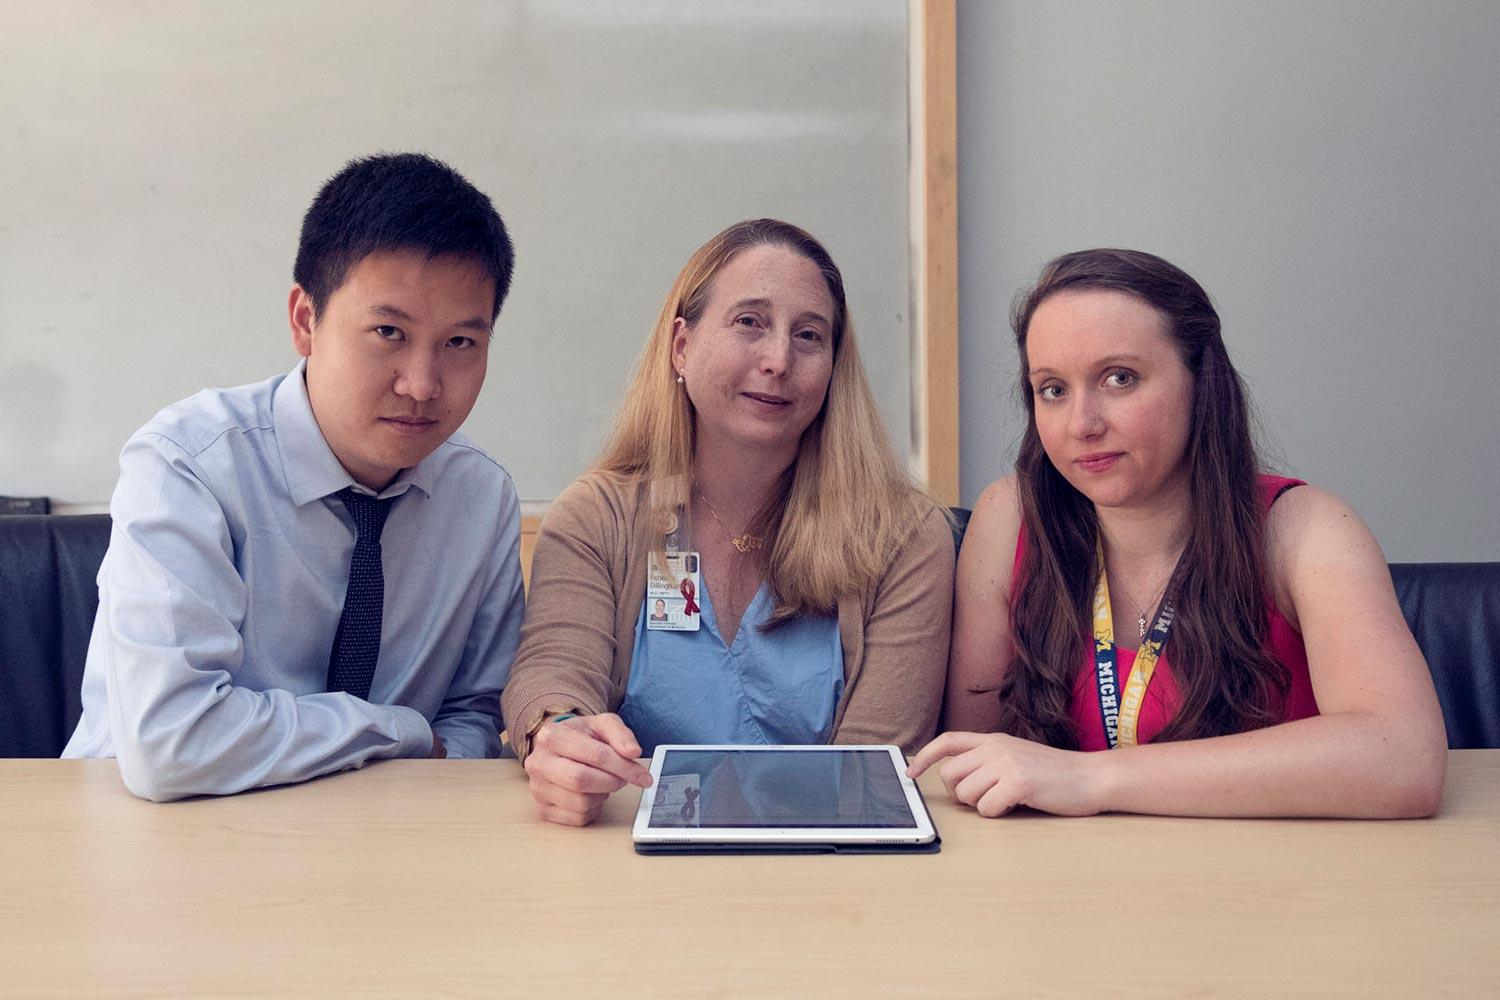 Some of the people behind PositiveLinks: Tianyi Jin, web developer; Dr. Rebecca Dillingham; and Marika Grabowski, clinical data manager.